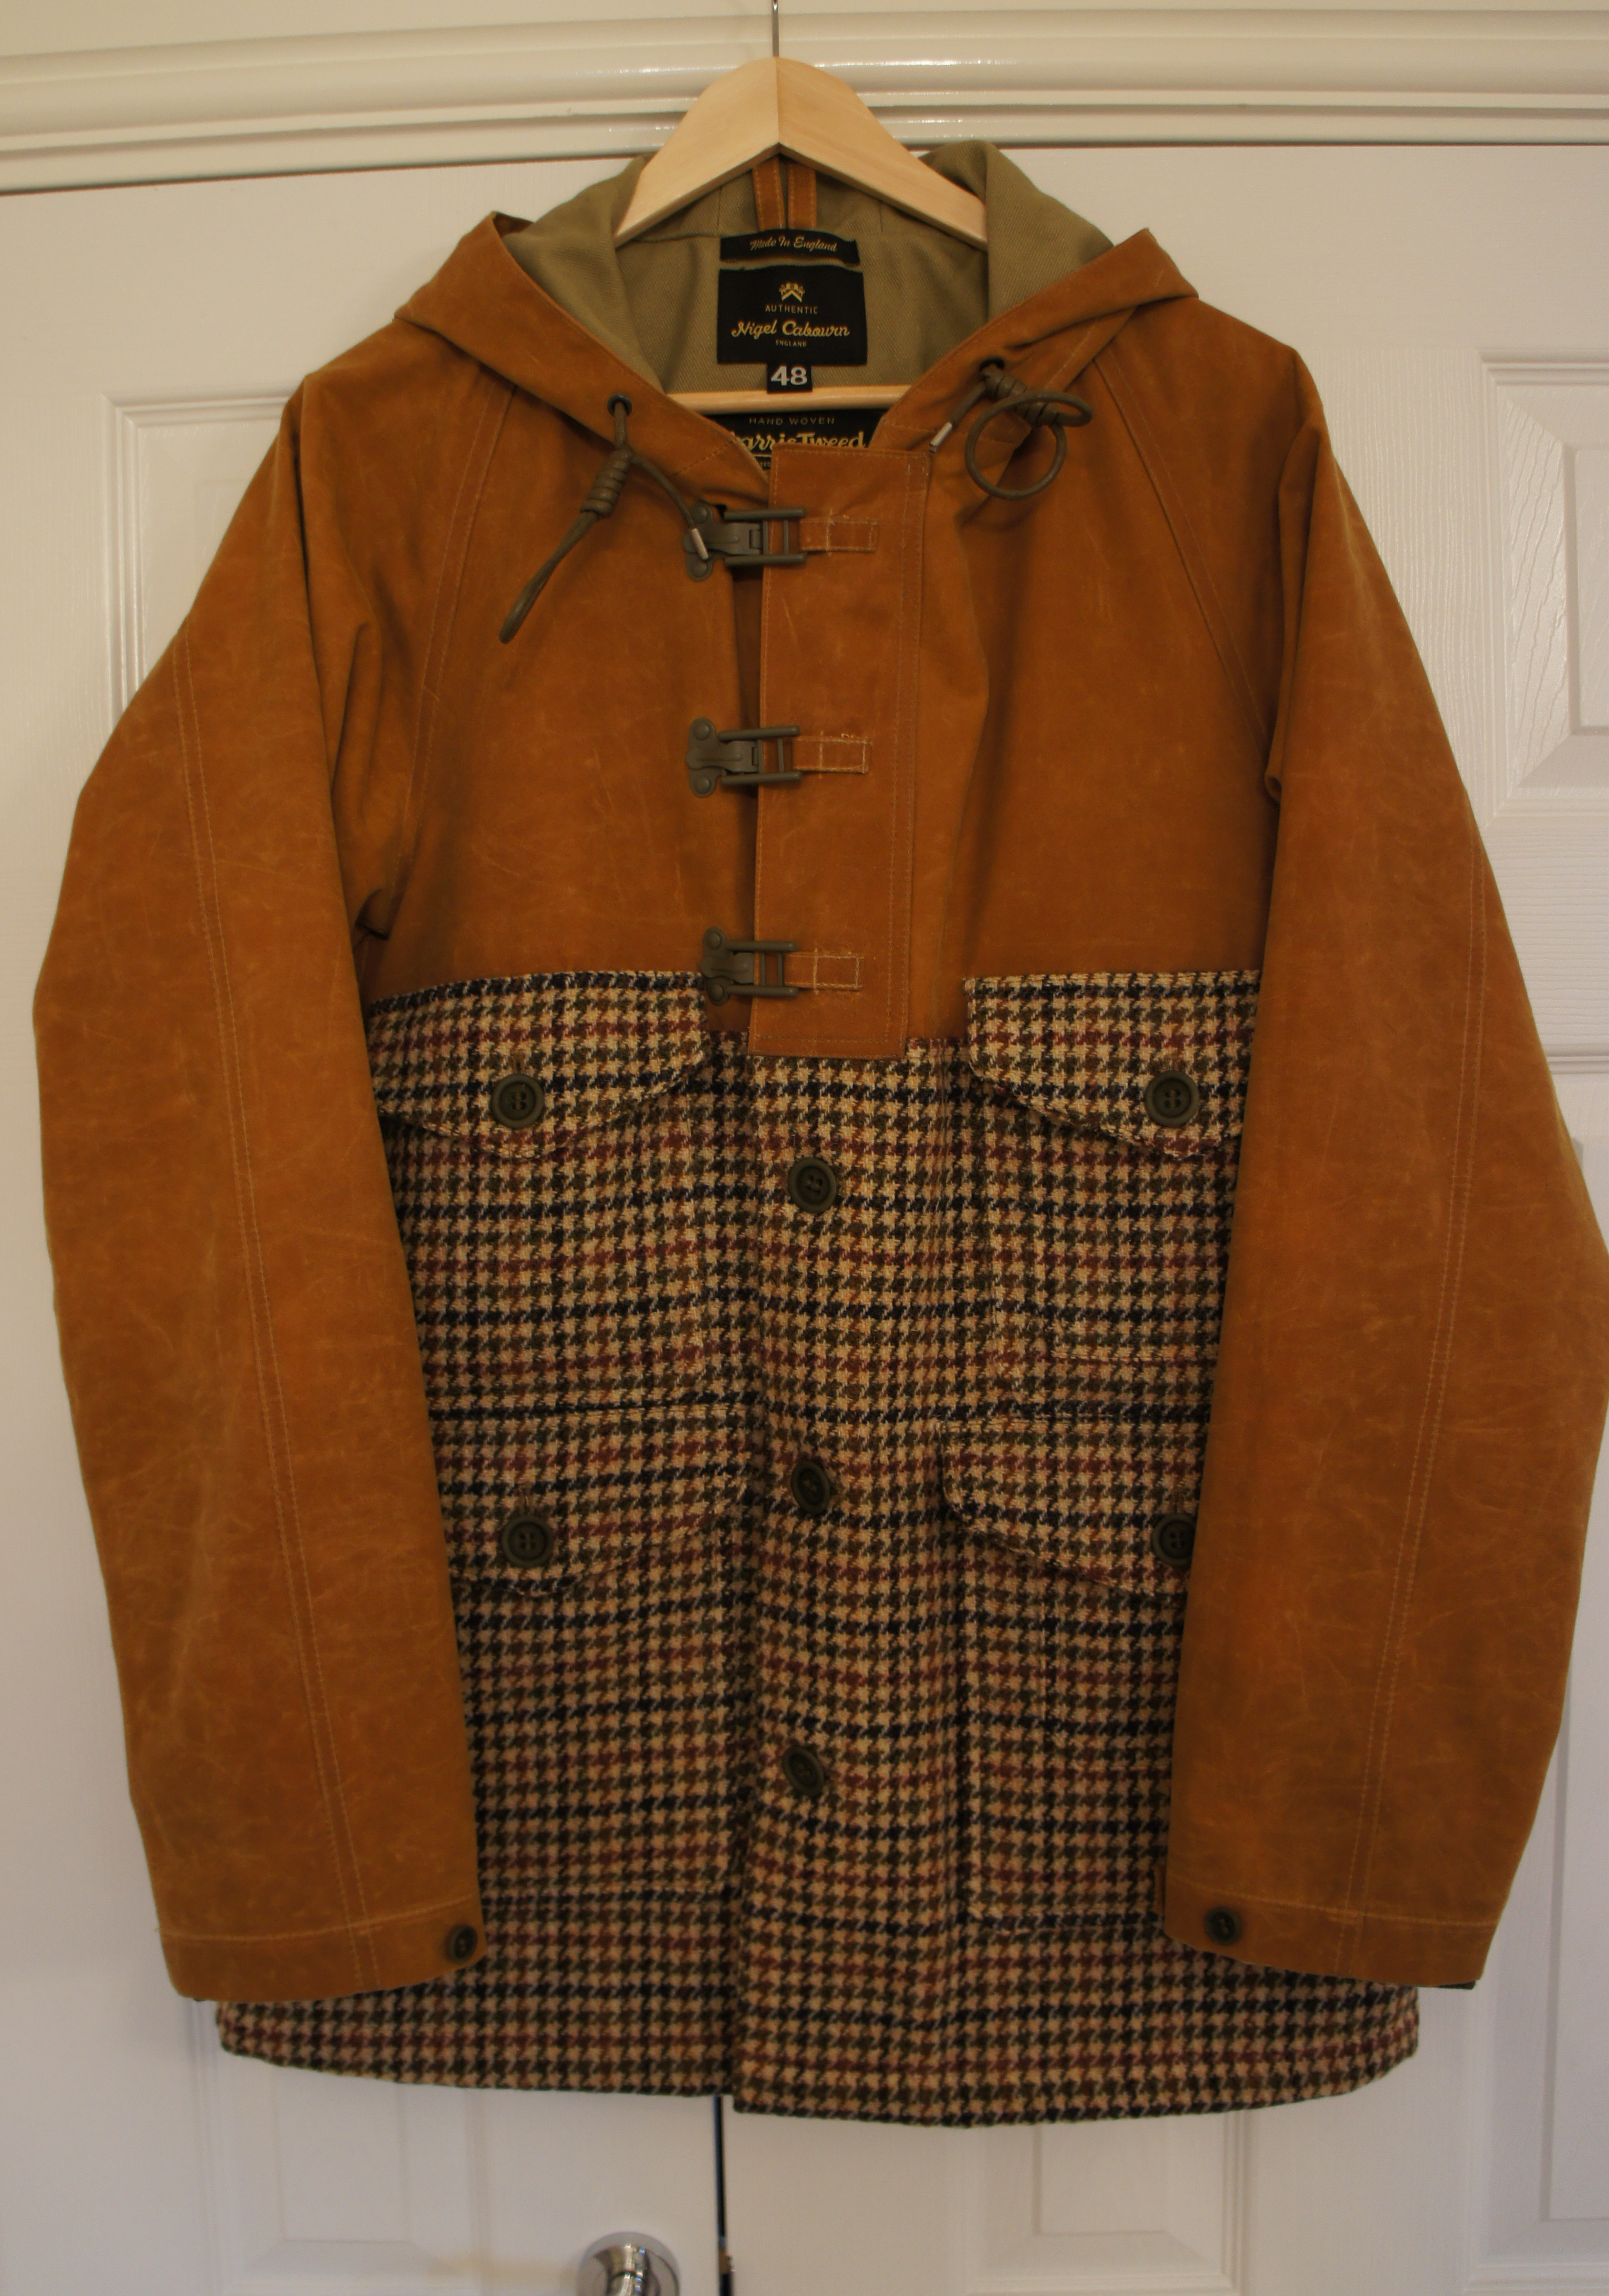 619e70349859c0 Last Buy – Nigel Cabourn Lined Cameraman Jacket – American Icons